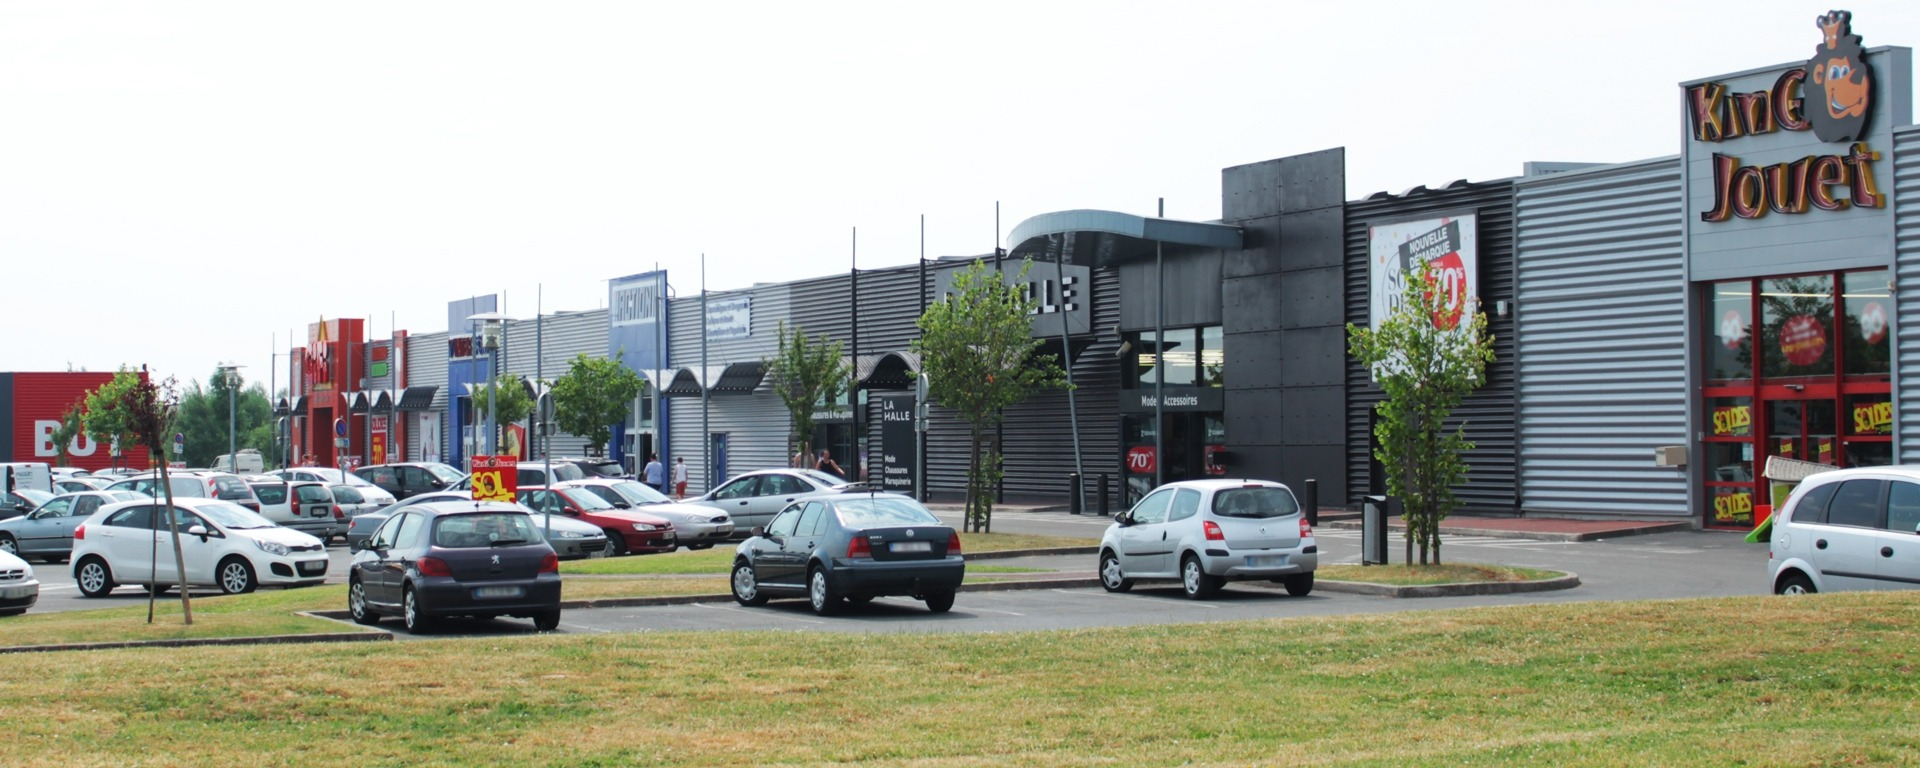 image site mairie Fourmies